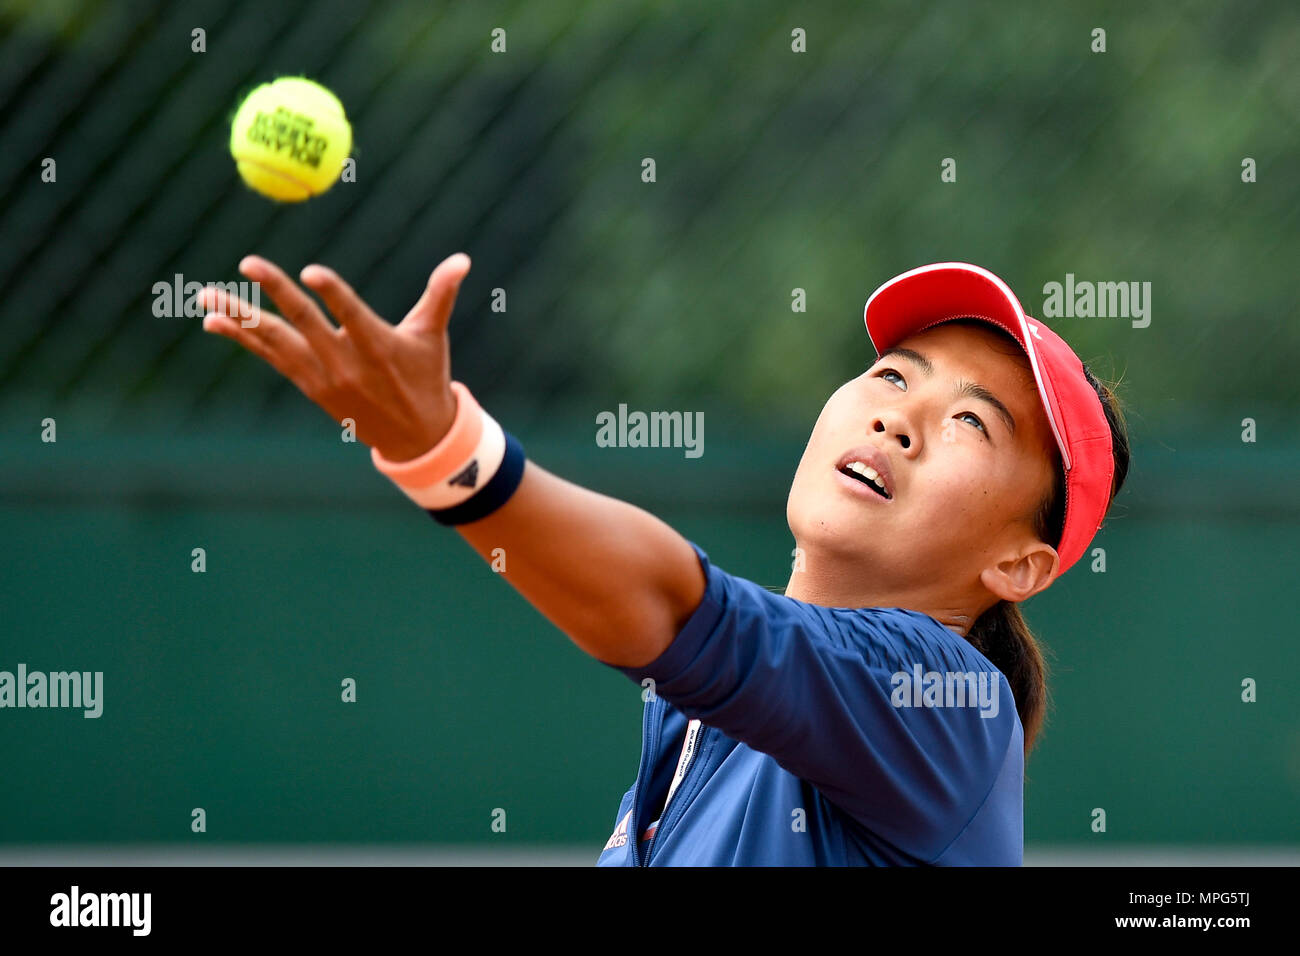 Paris, France. 23rd May, 2018. Liu Fangzhou of China serves to Destanee Aiava of Australia during the women's singles Qualification 1st round match of French Open in Paris, France on May 23, 2018. Liu won 2-1. Credit: Chen Yichen/Xinhua/Alamy Live News Stock Photo